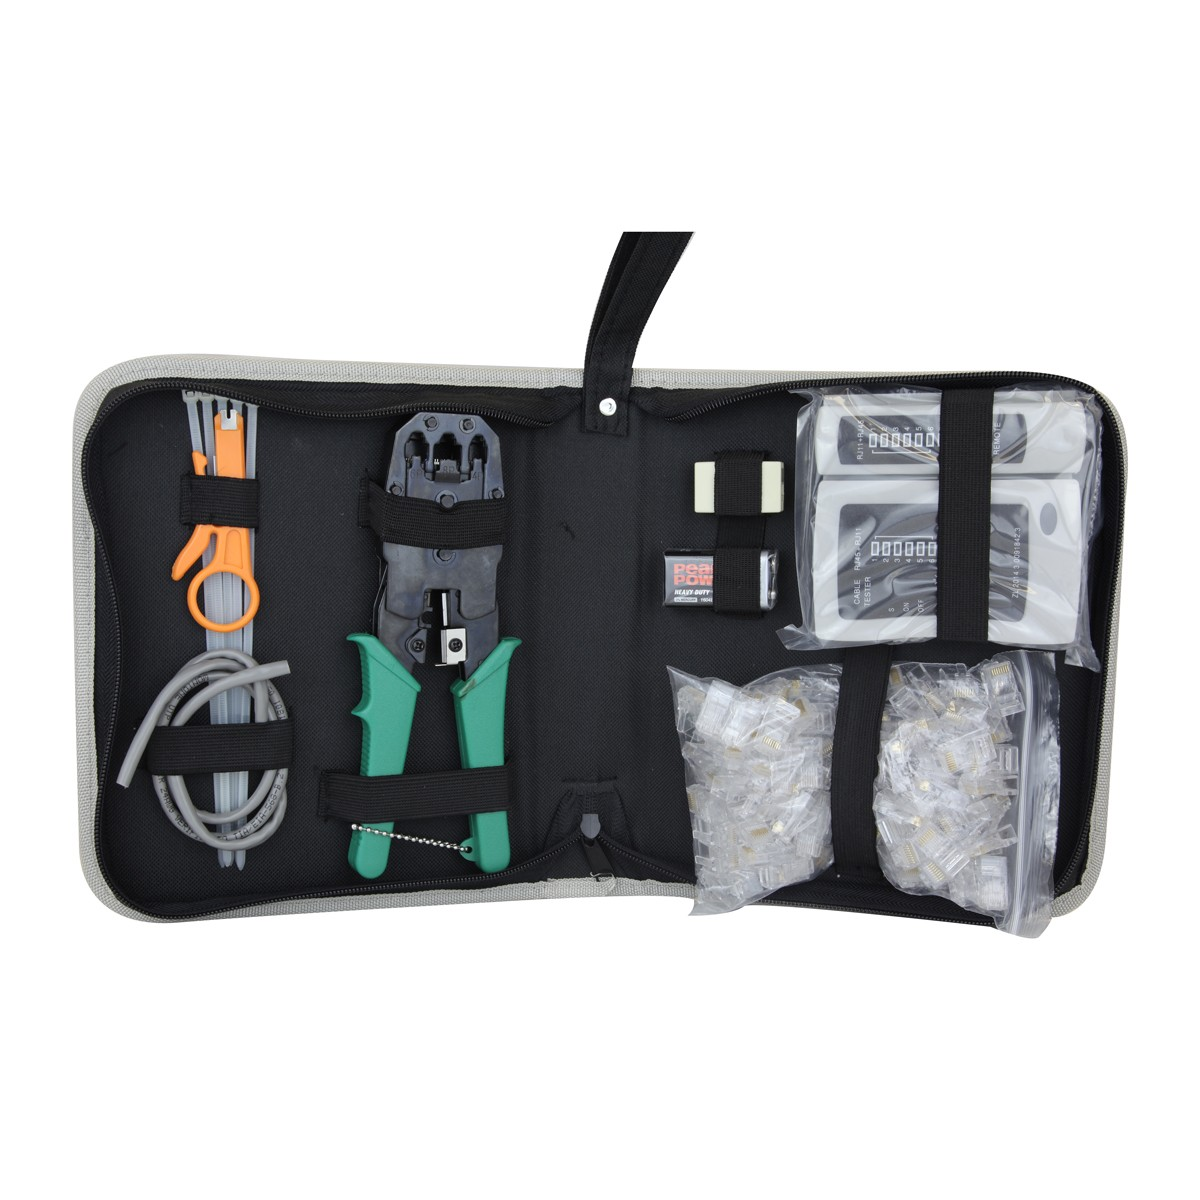 Strongrr Commercial Grade Modular Tool Kit, Crimping, Stripping, Cutting, Cable Testing for Cat5, 8P8C RJ-45, 6P6C RJ-12, RJ-11 and 4P4C RJ9